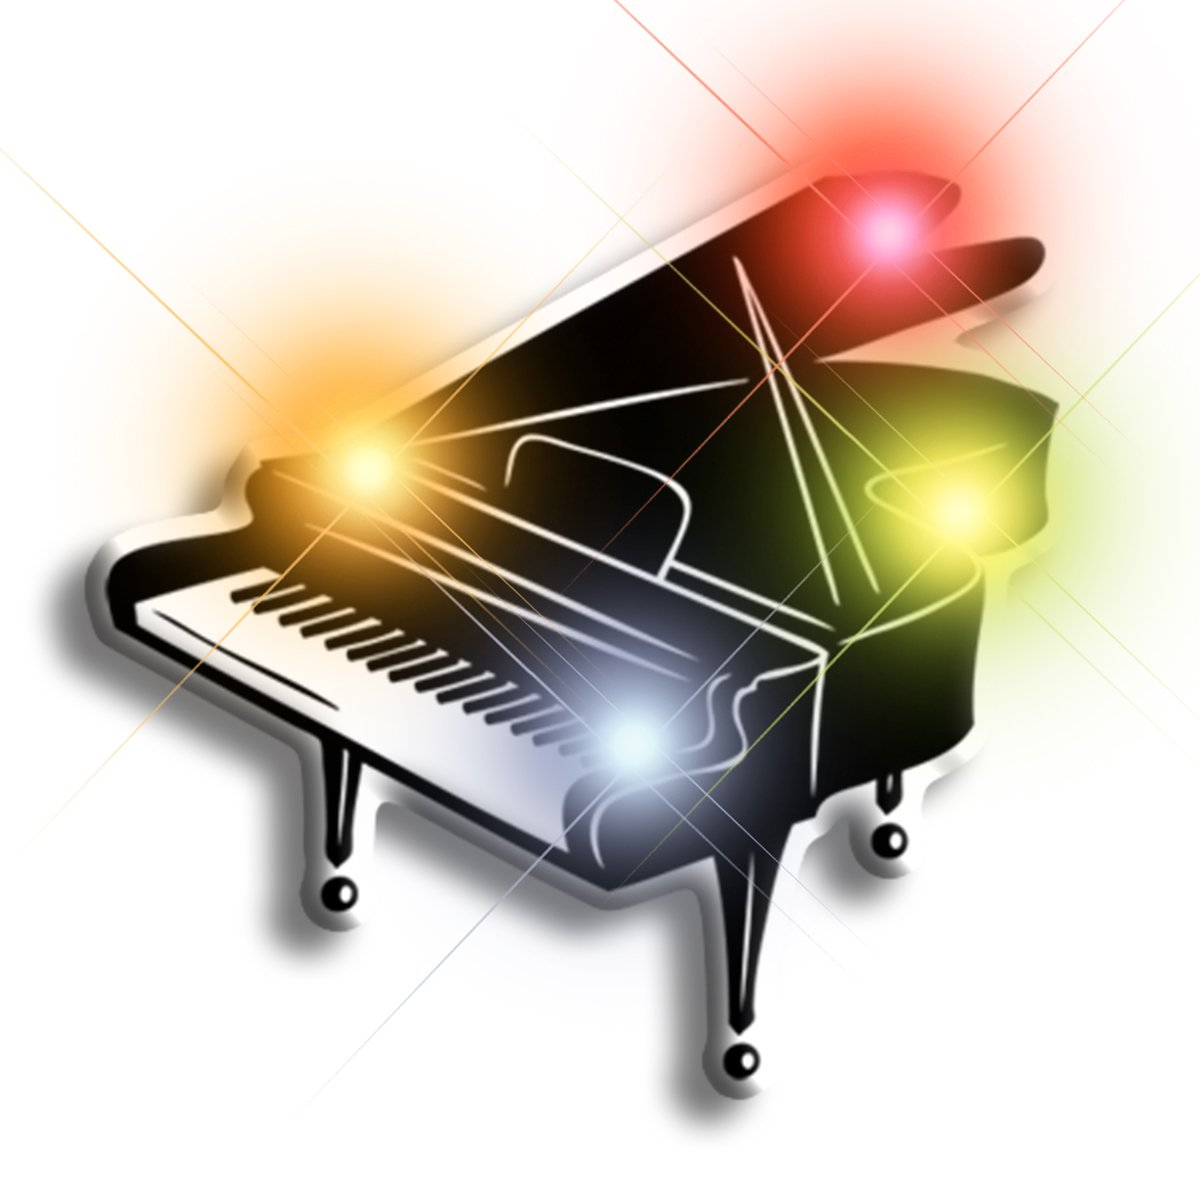 Light Up Grand Piano Flashing Blinking LED Body Light Lapel Pins (Set of 25)